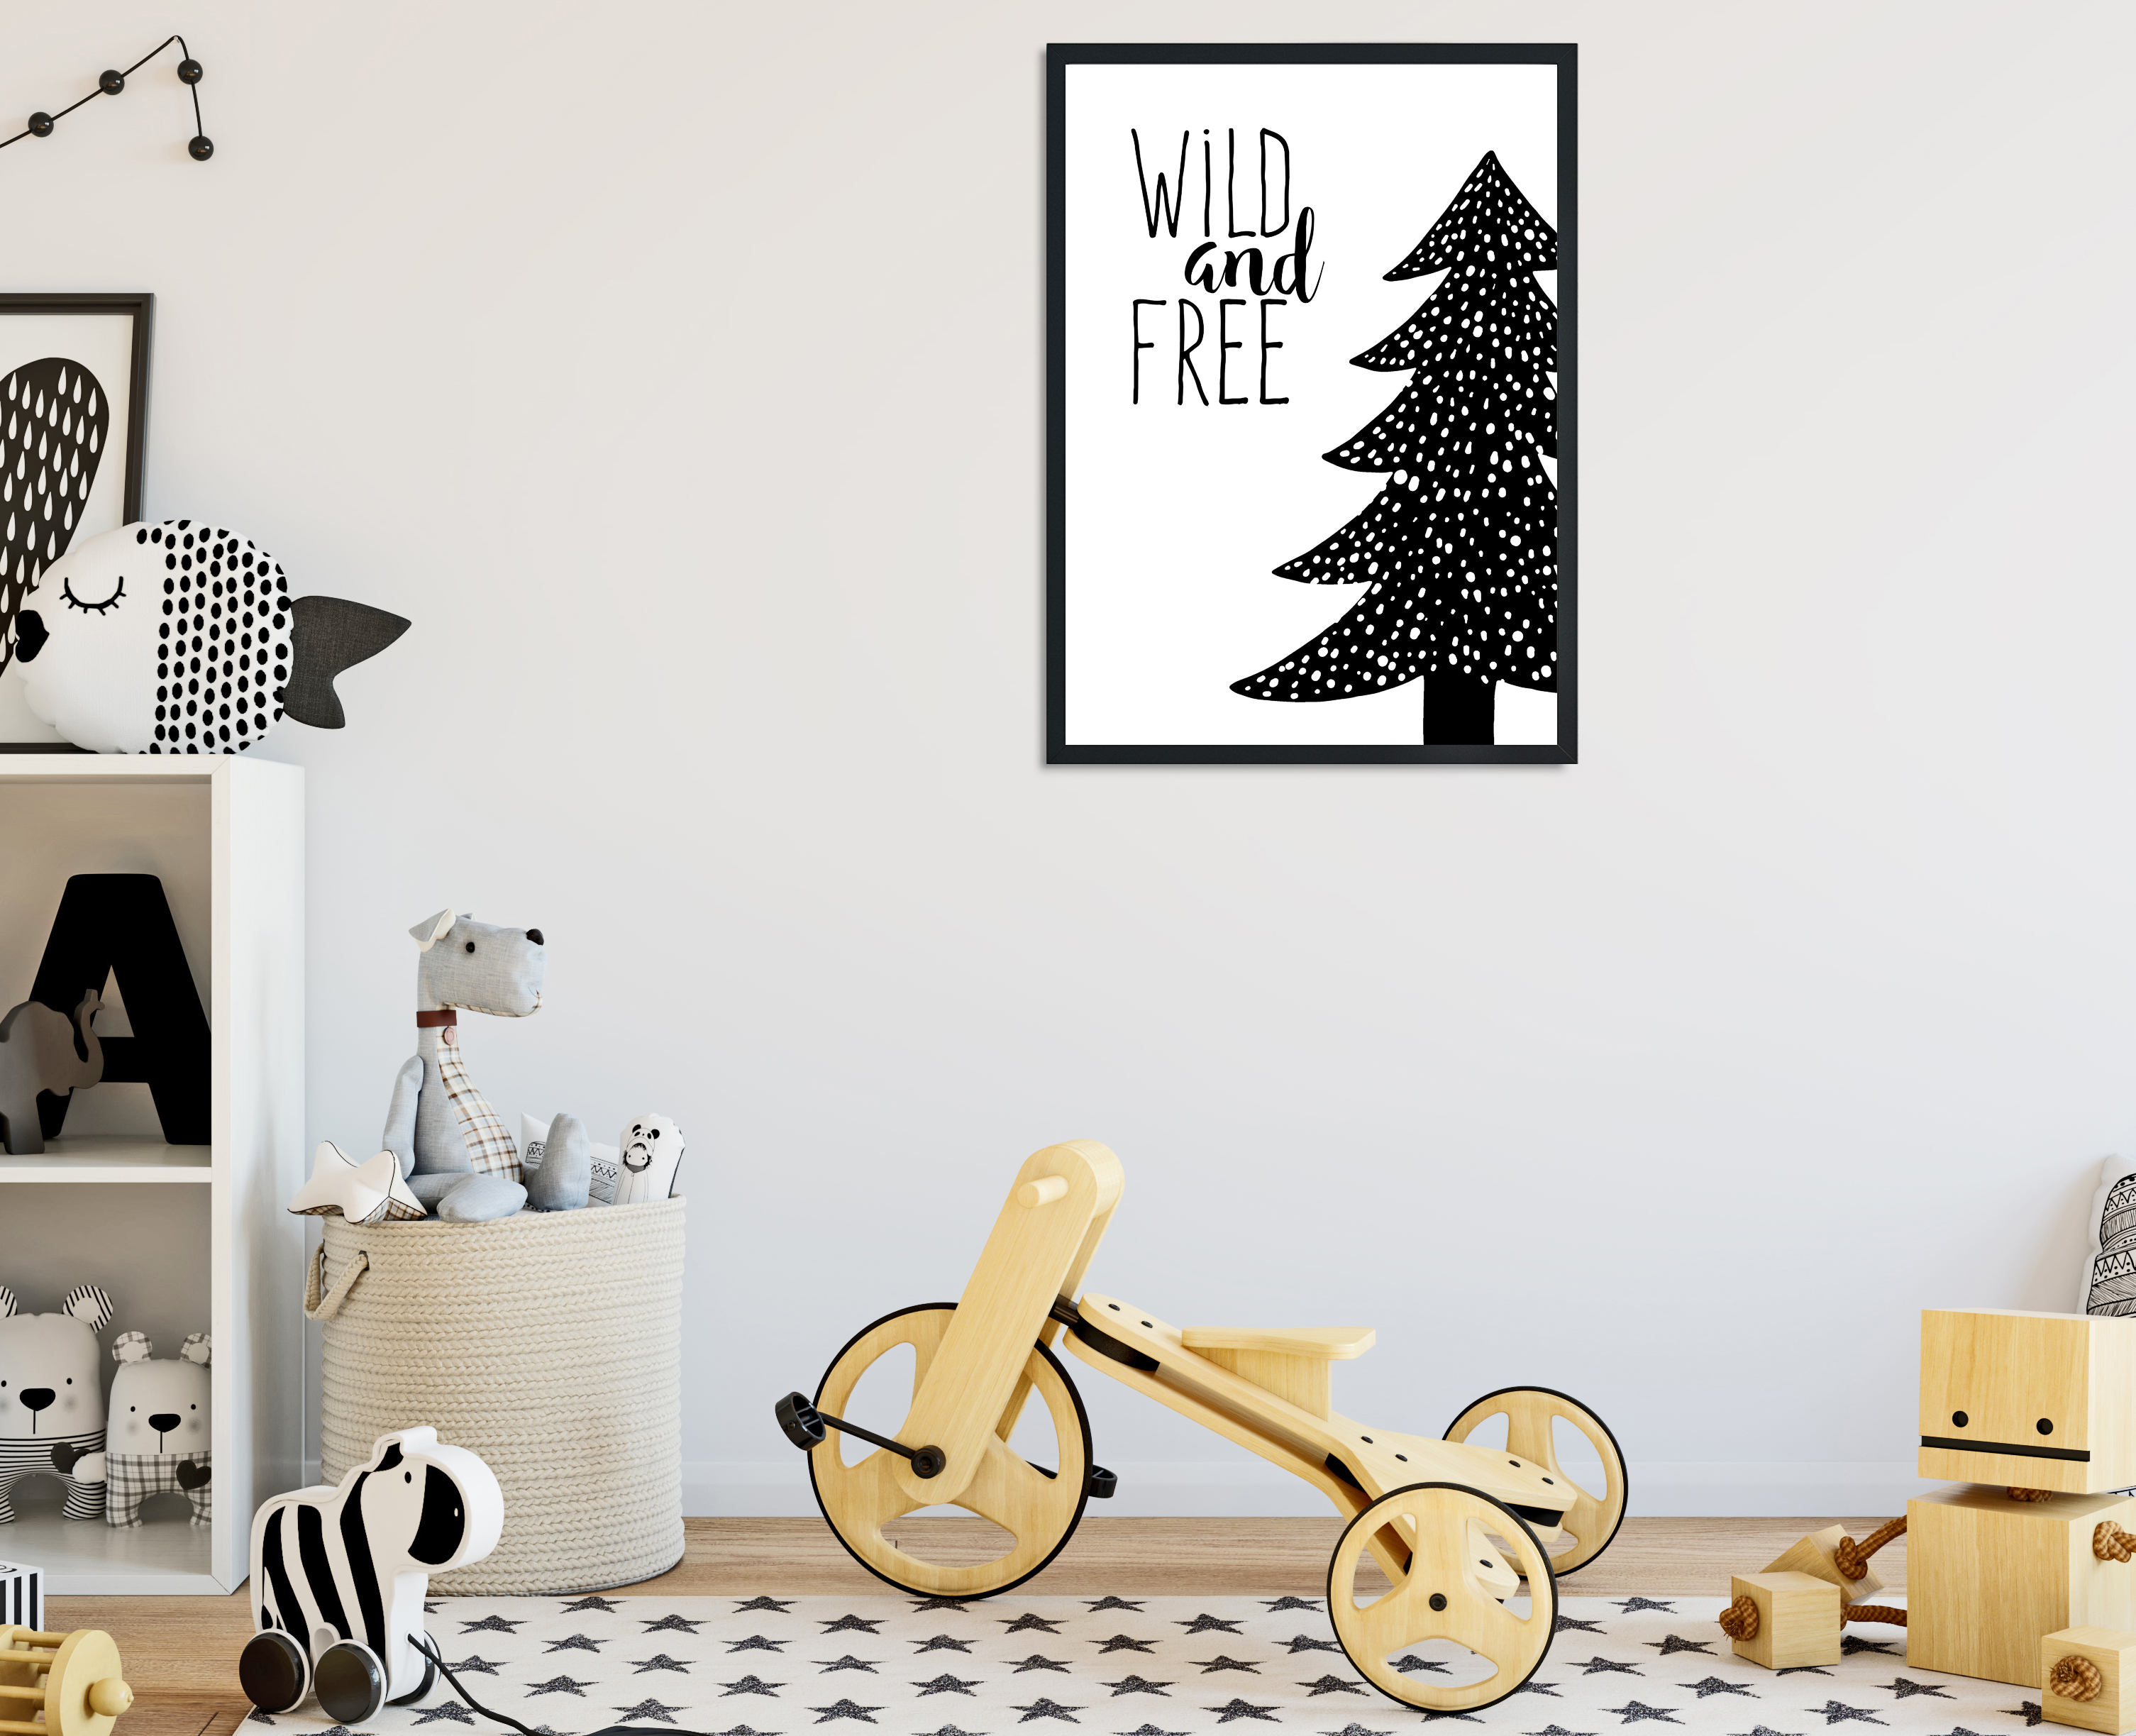 L and T Designs Wild and Free print